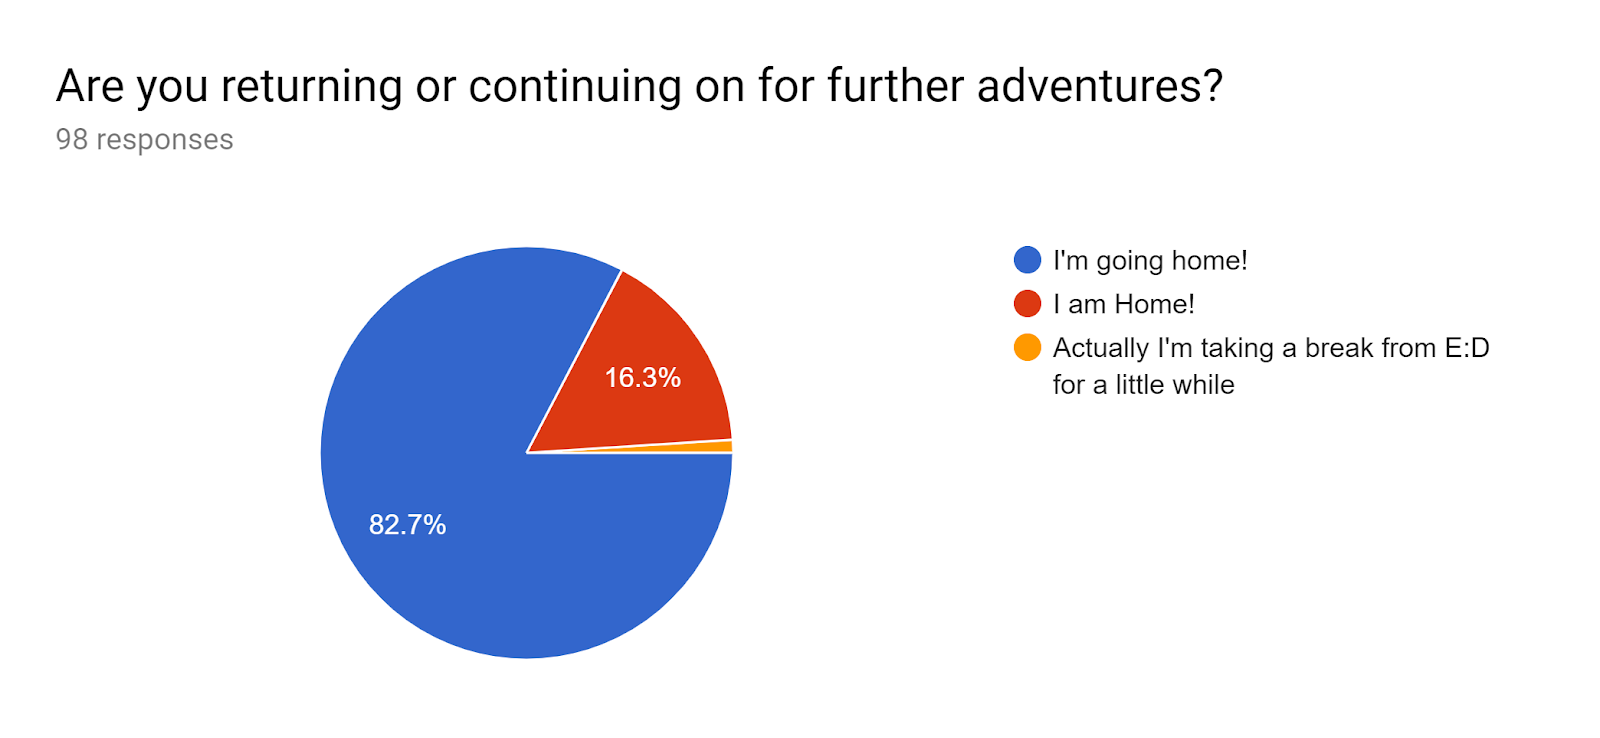 Forms response chart. Question title: Are you returning or continuing on for further adventures?. Number of responses: 98 responses.